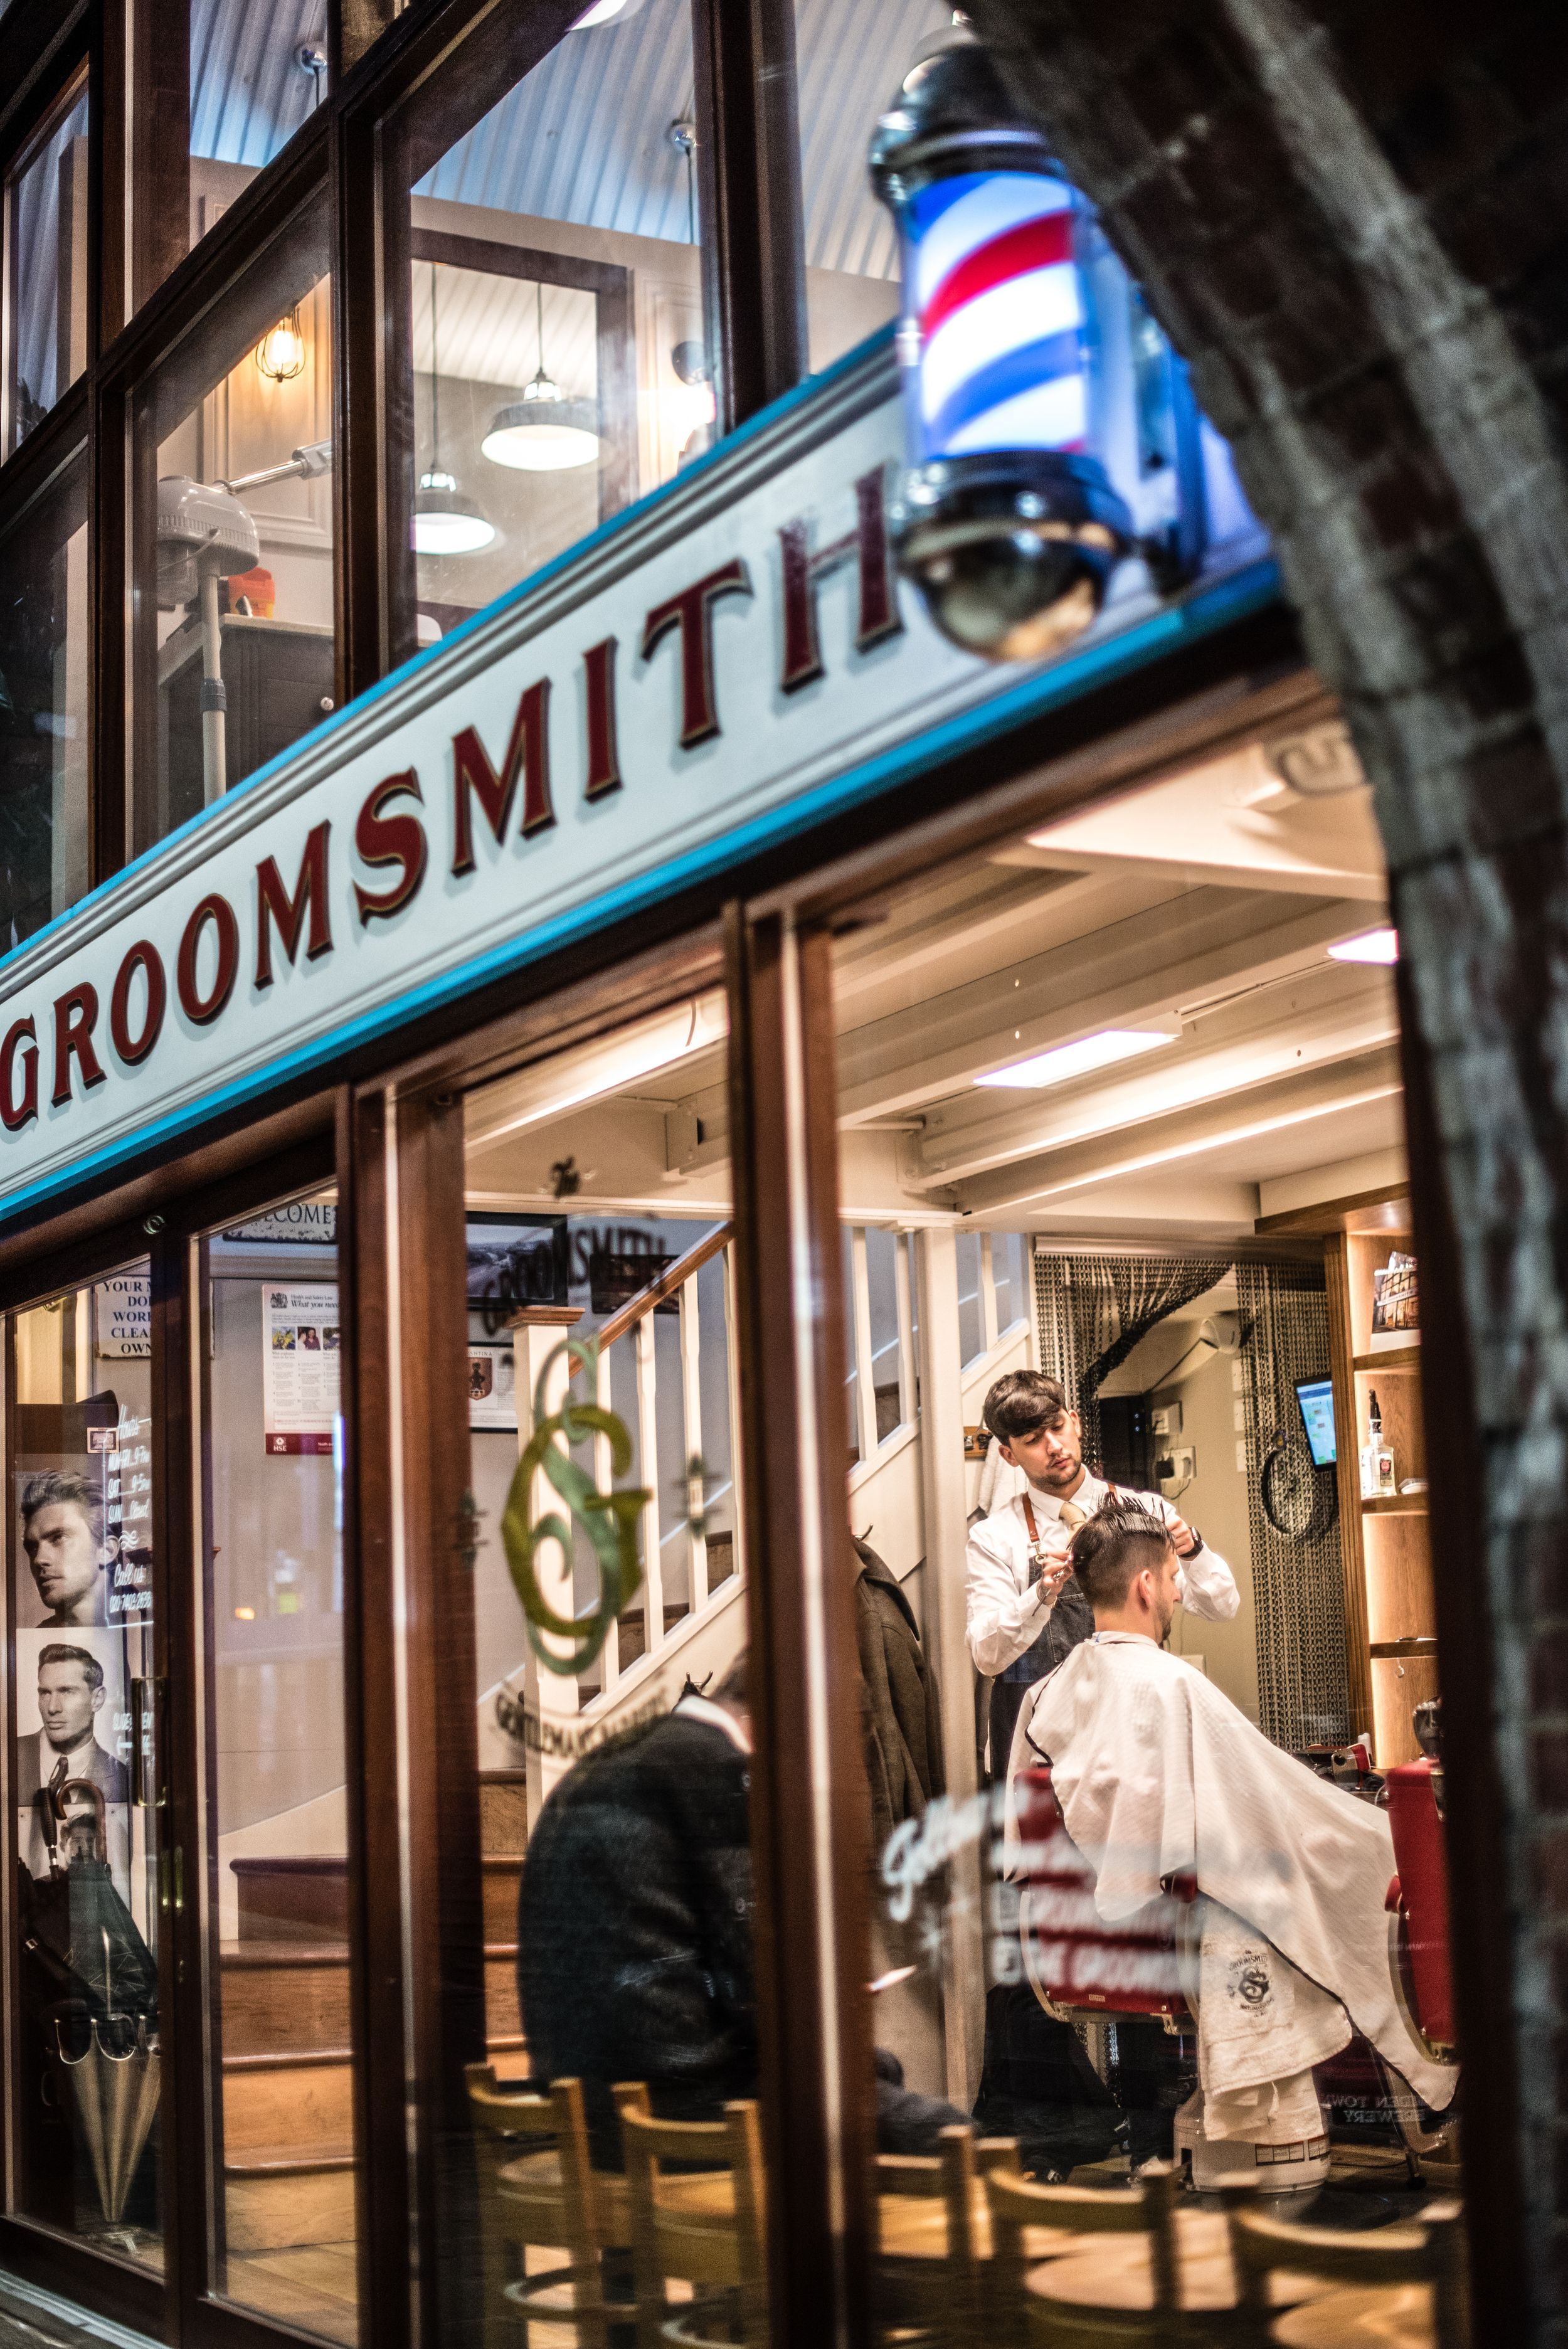 Man getting a haircut at London's Groomsmith